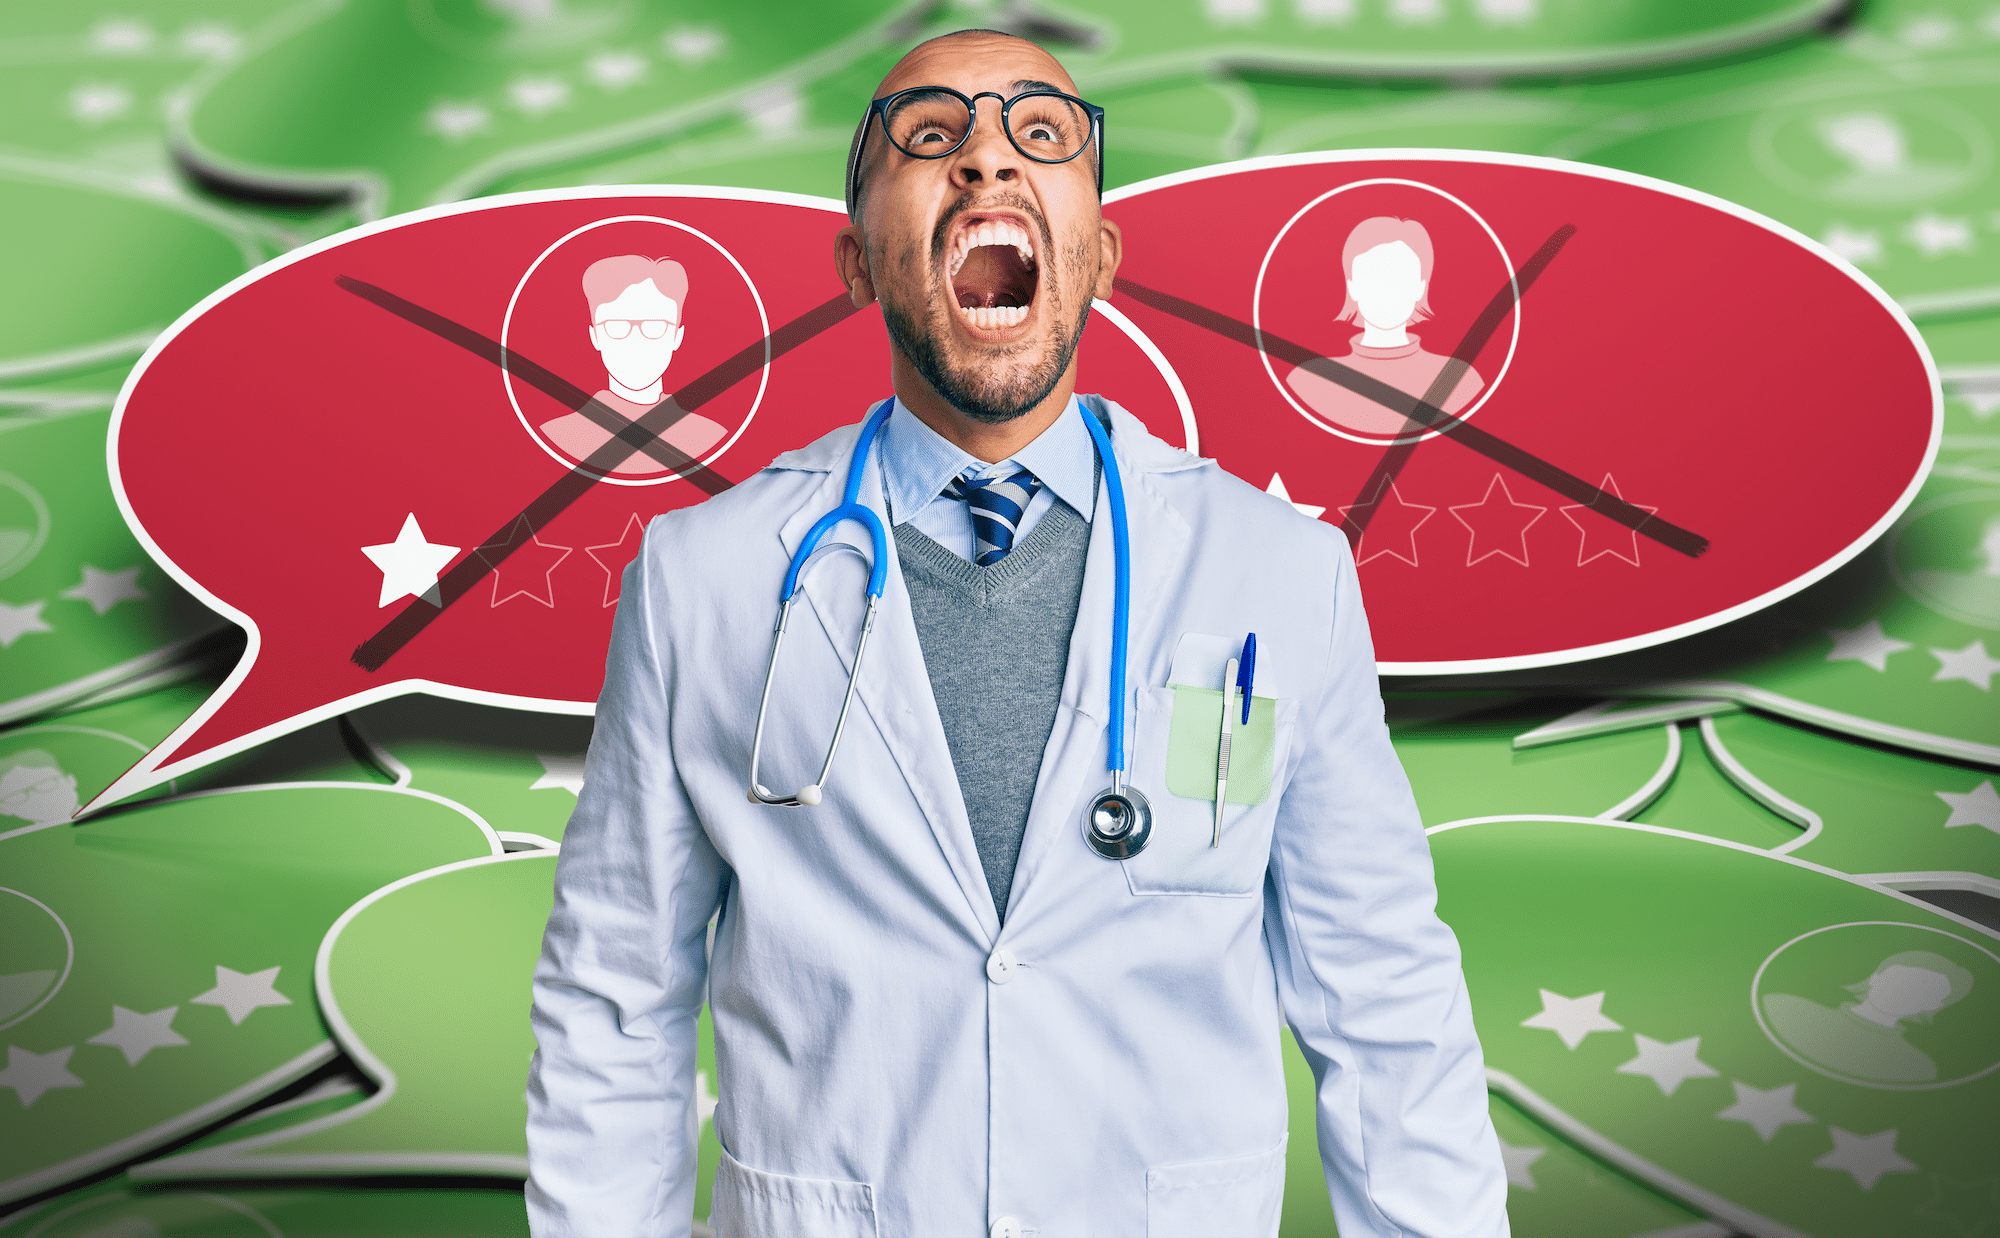 How Doctors Can Manage a Fake Google Review